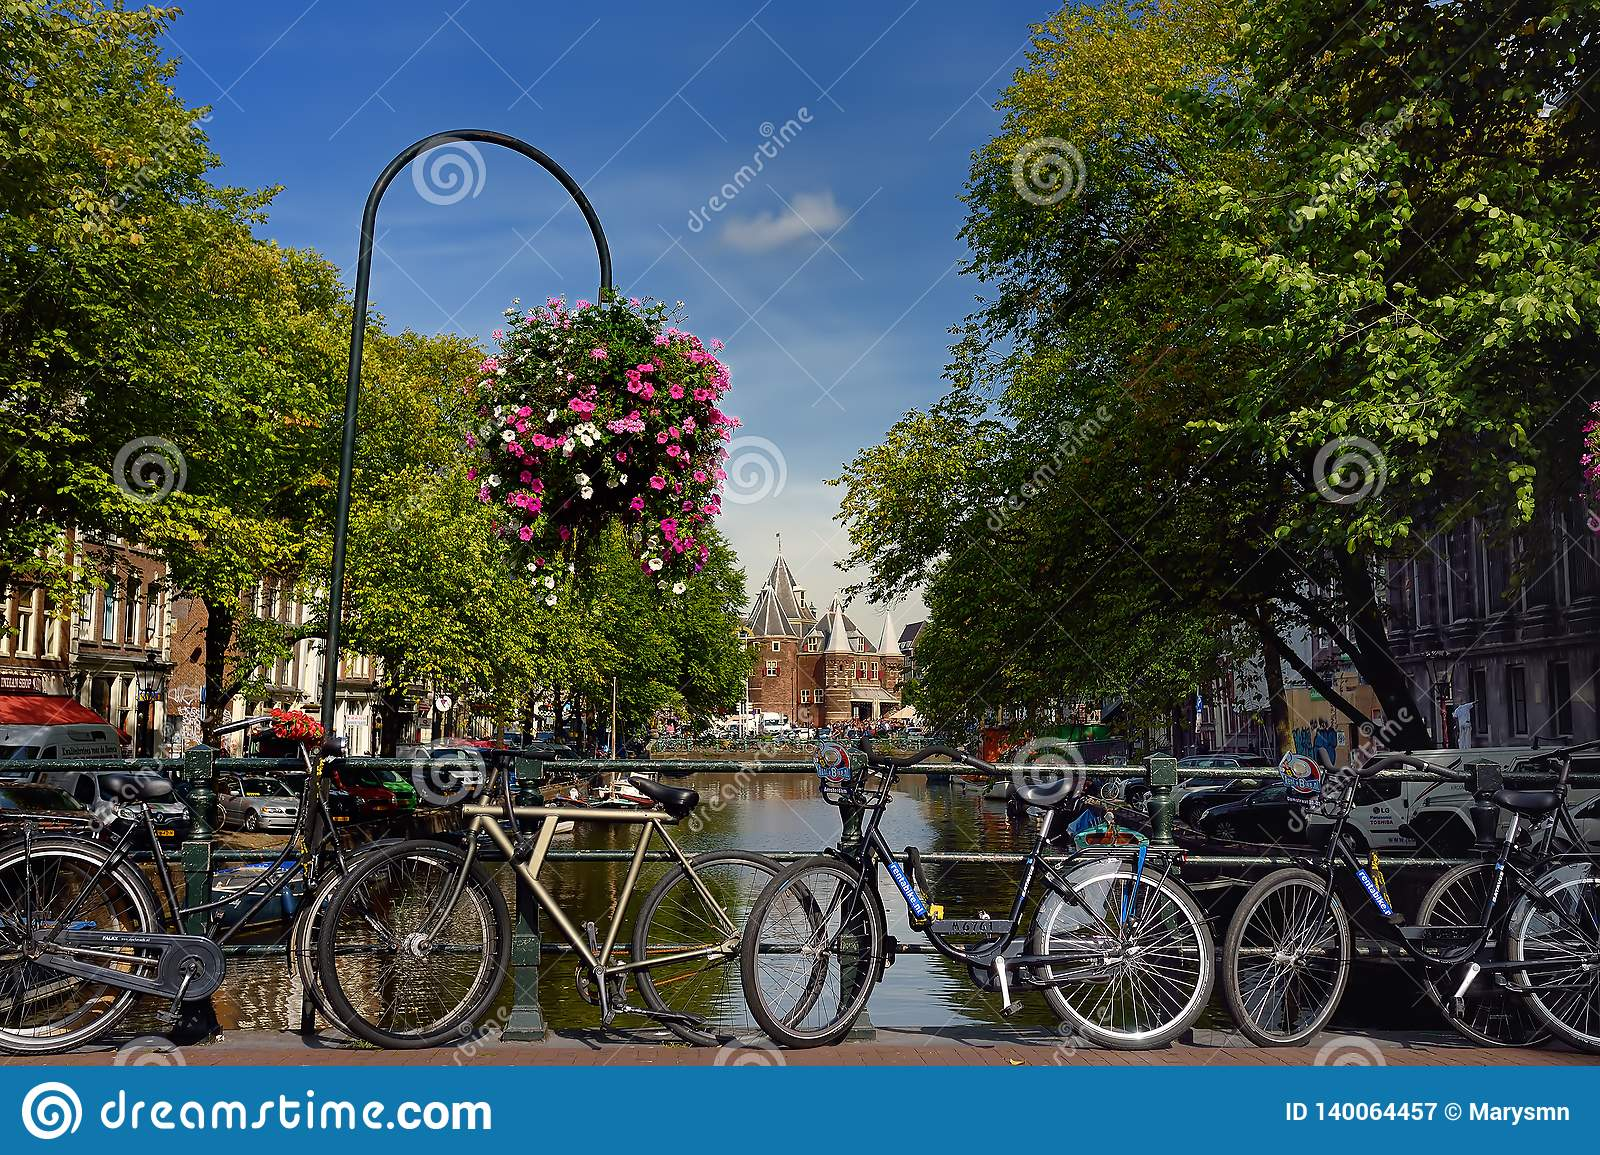 AMSTERDAM, NETHERLANDS - SEPTEMBER 17, 2018: Street, canal, bridge with bicycles, Nieuwmarkt New market building on background